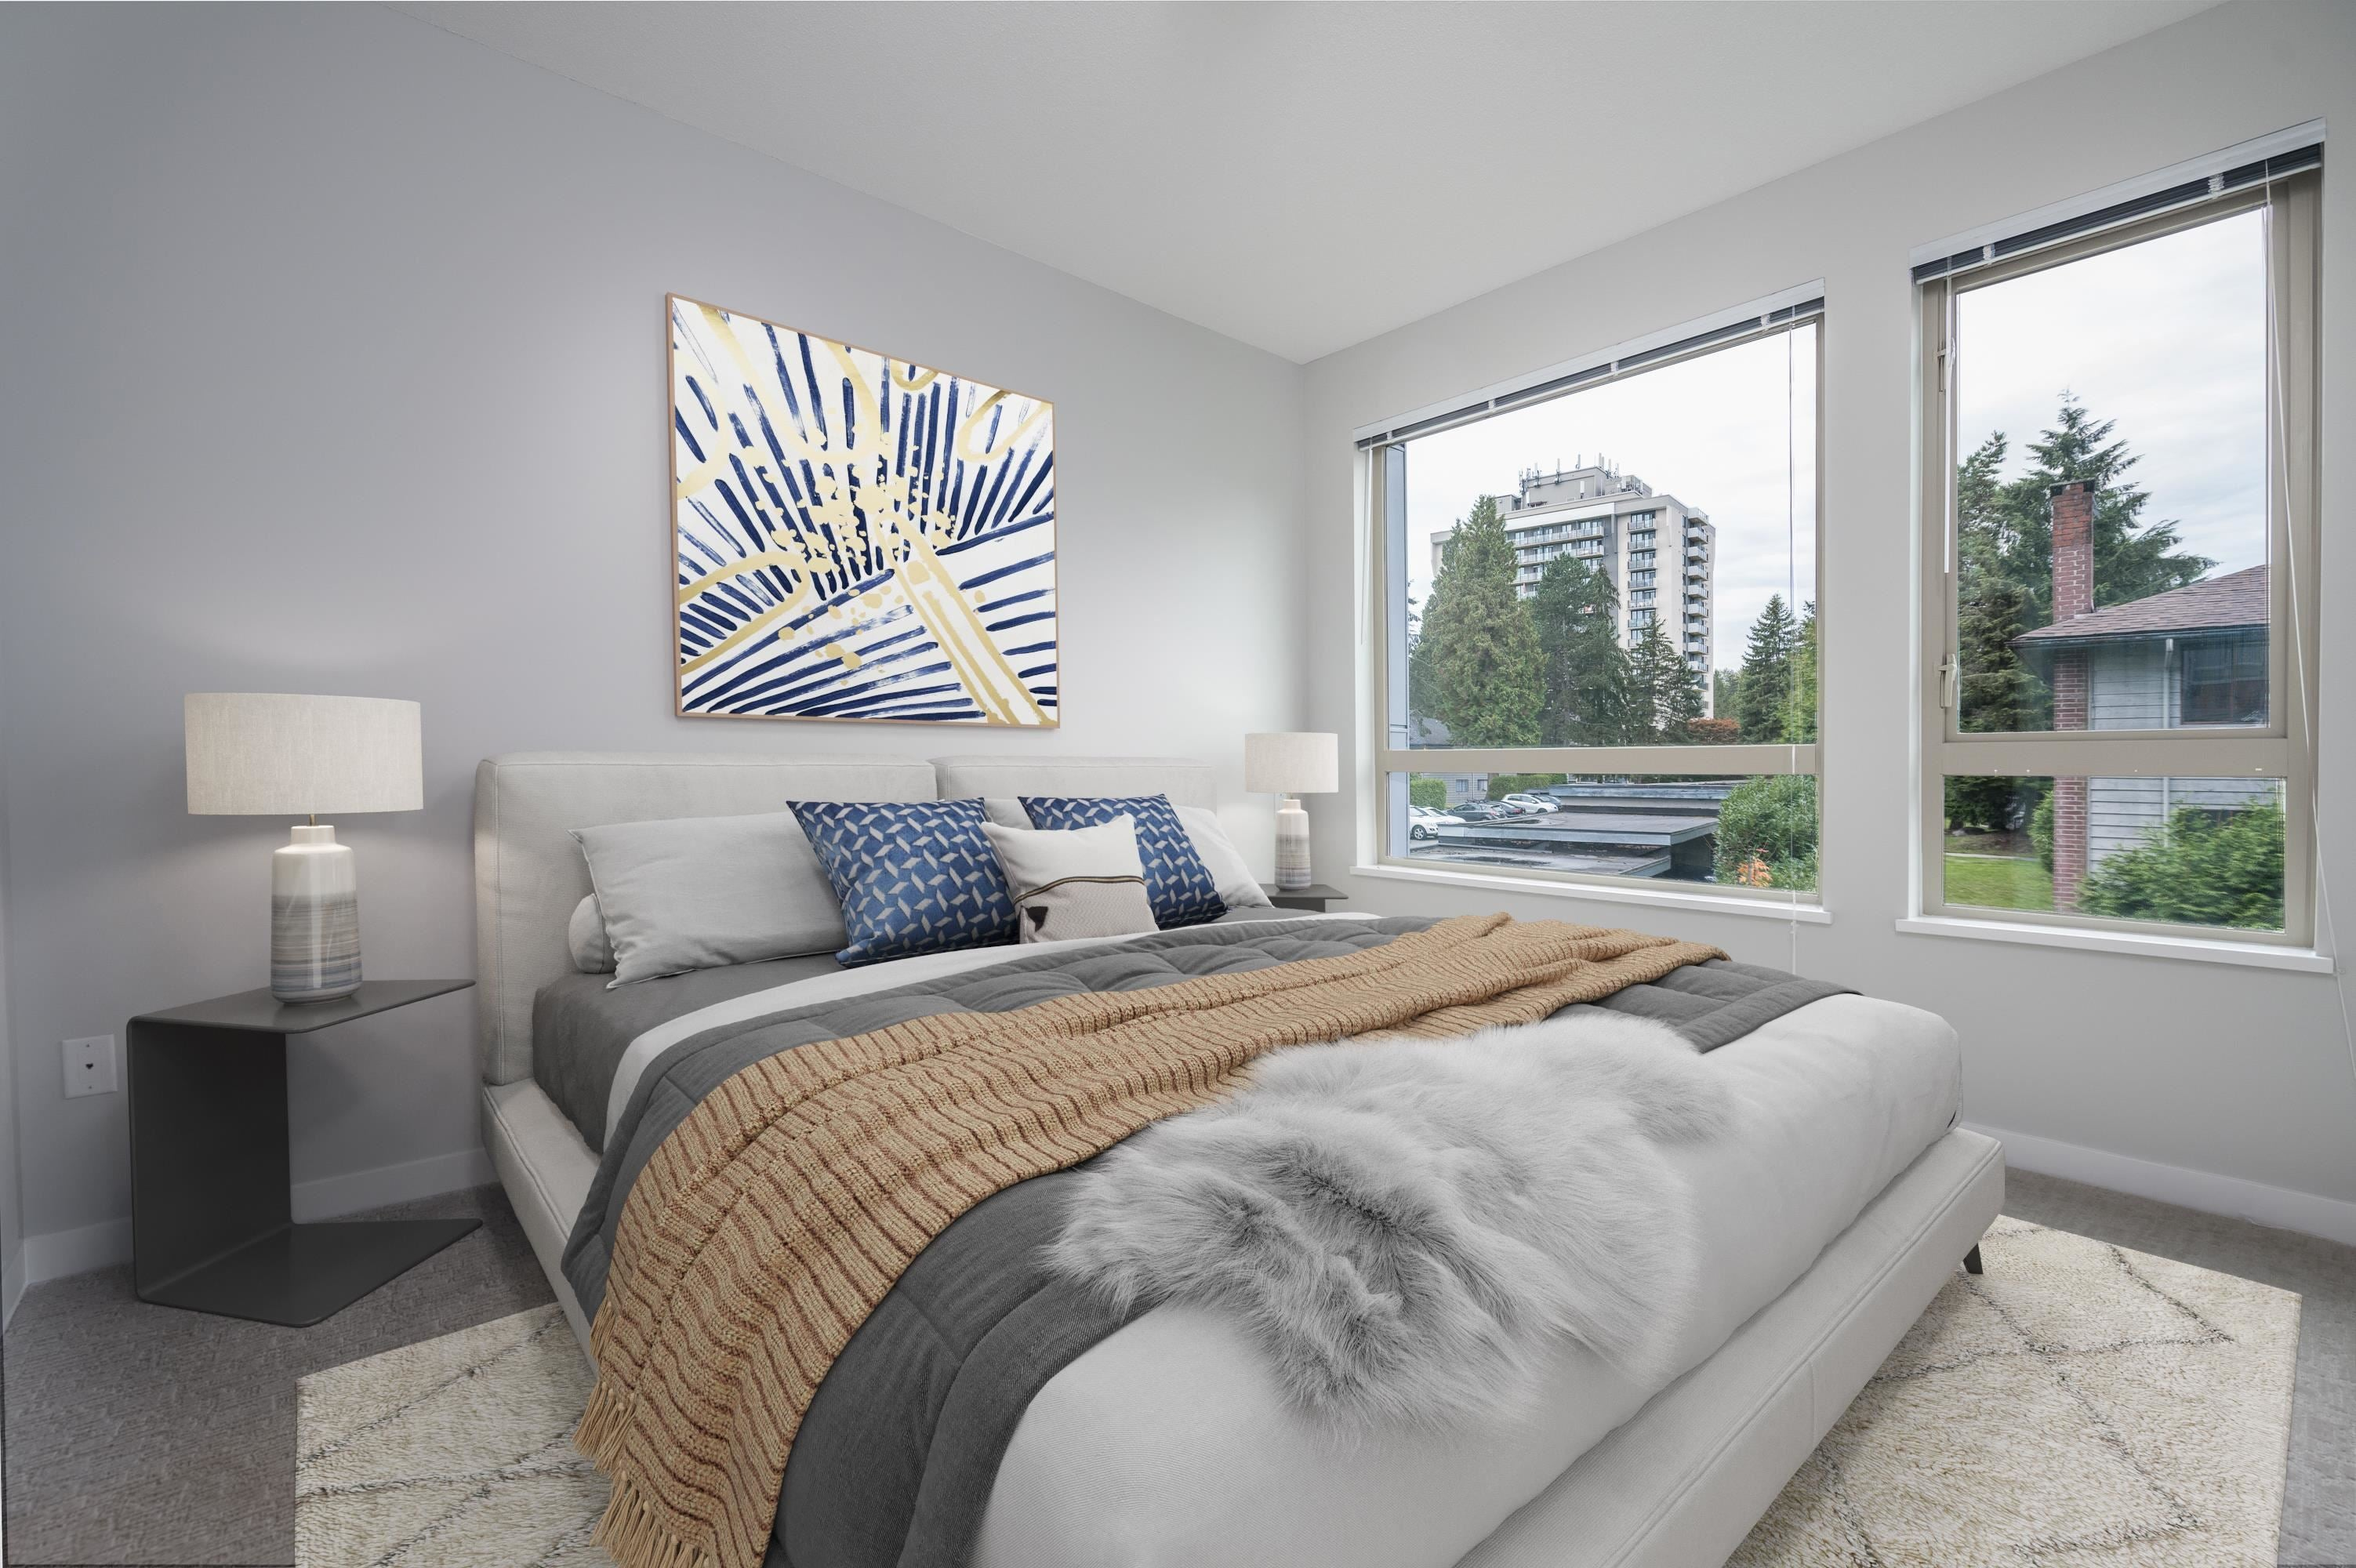 219 2651 LIBRARY LANE - Lynn Valley Apartment/Condo for sale, 2 Bedrooms (R2623232) - #11